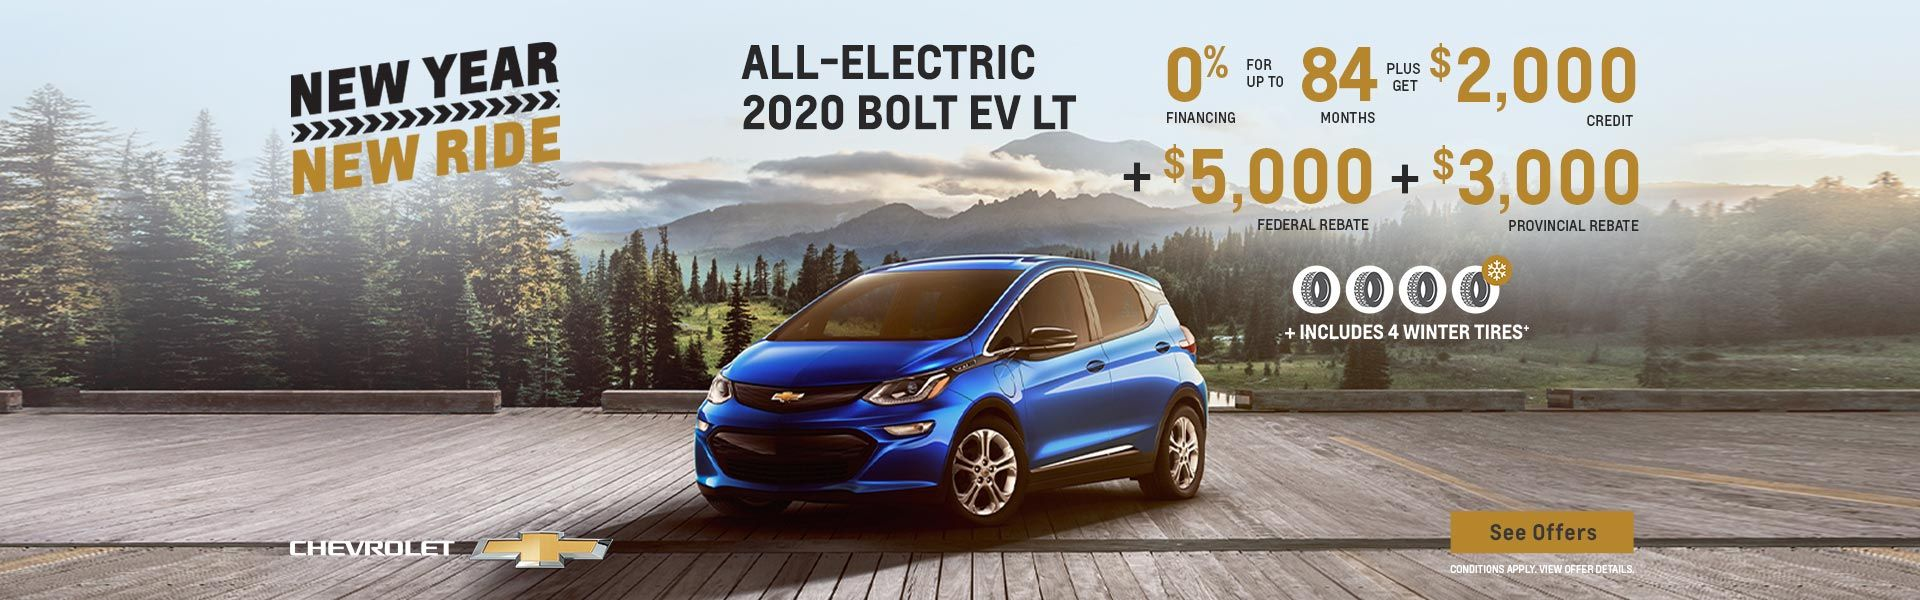 New Year New Ride Chevrolet Bolt EV